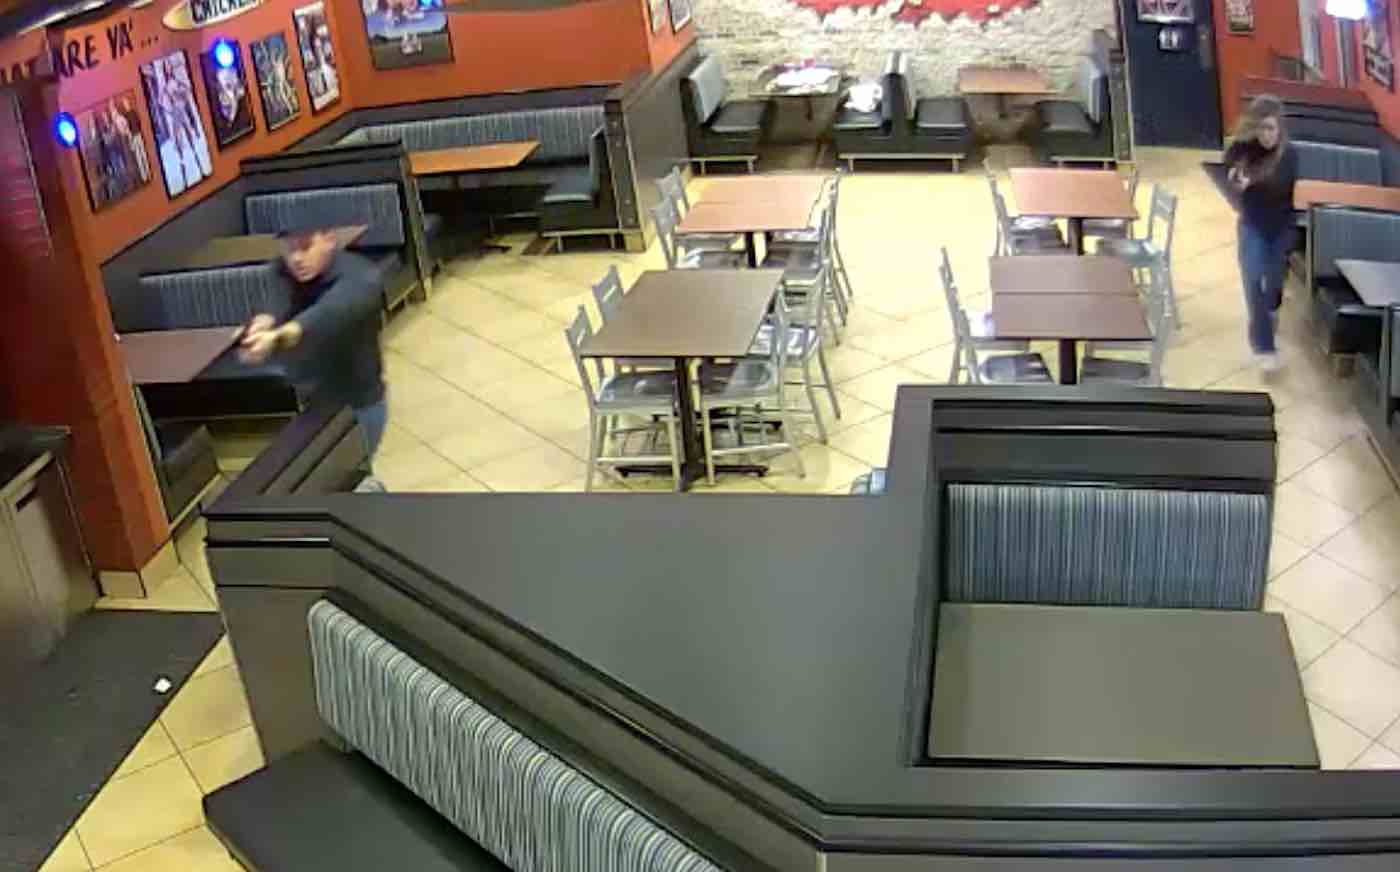 Fowl play: Man's chicken restaurant robbery foiled by police